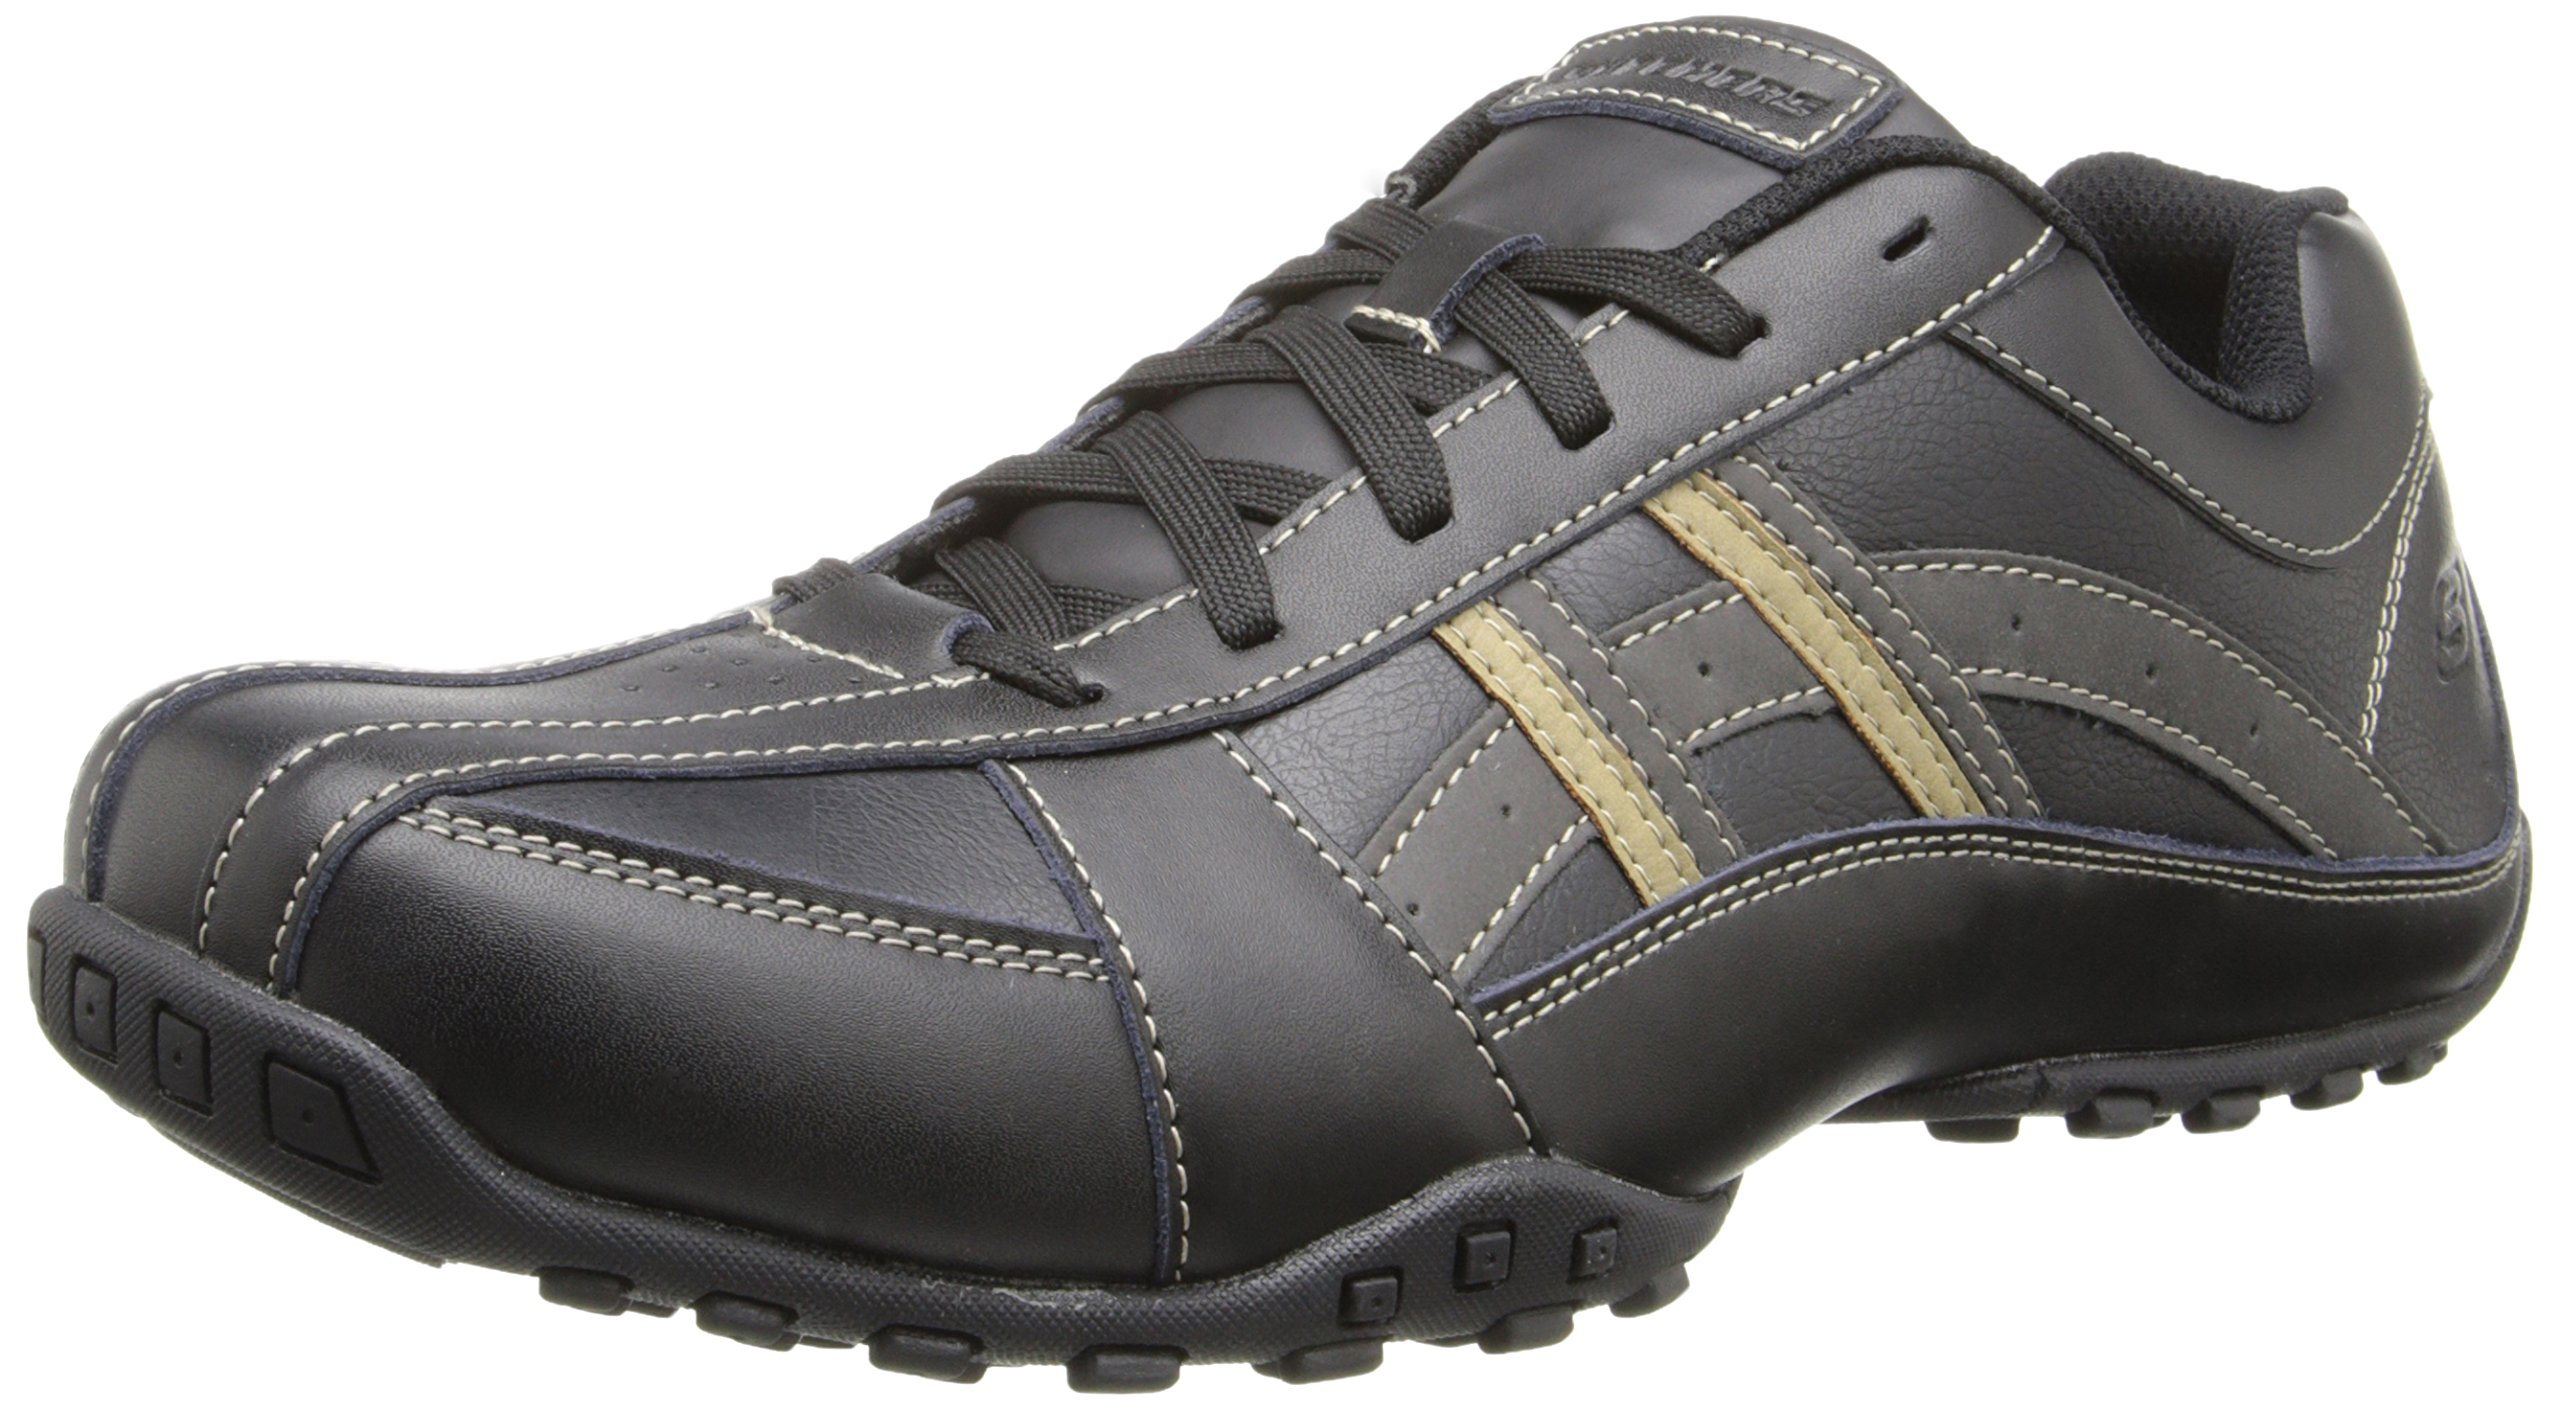 Skechers USA Men's Citywalk Malton Oxford Sneaker,Black,12 M US by Skechers